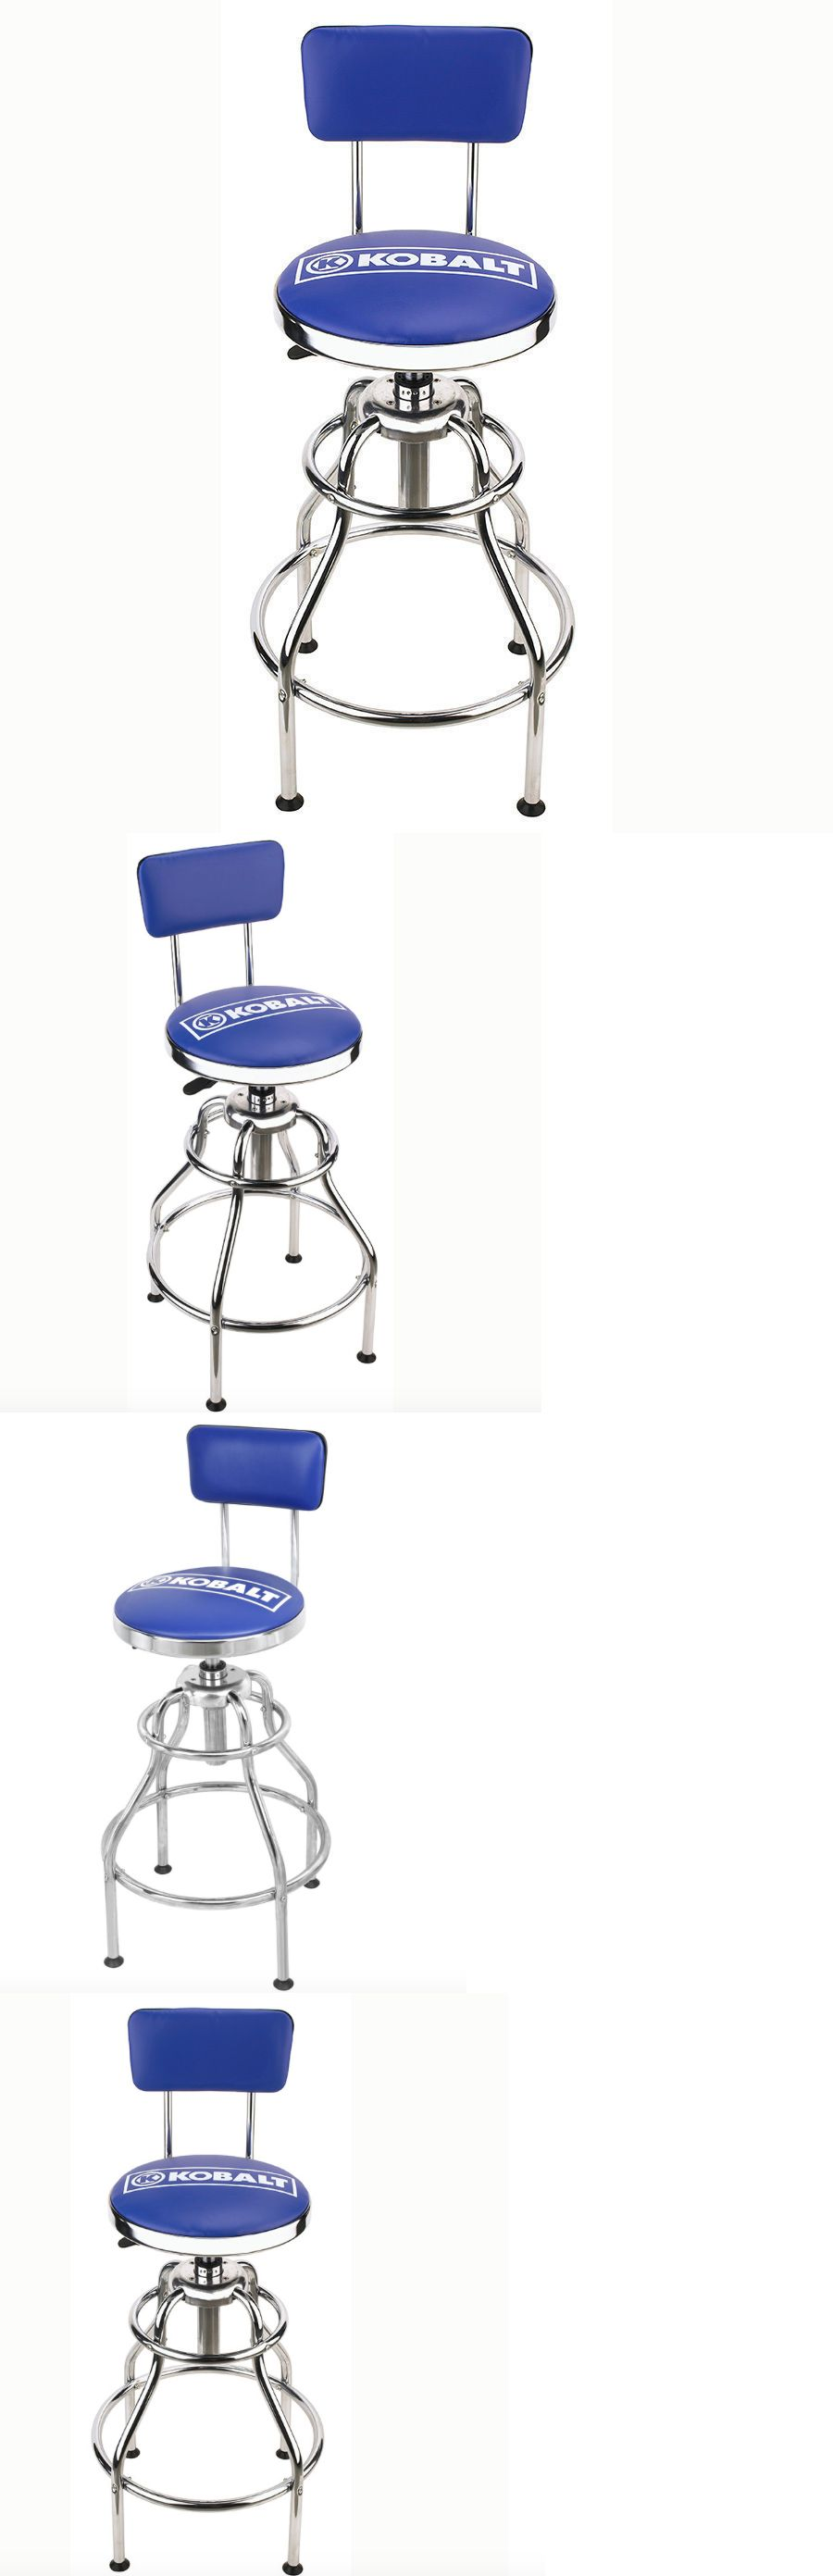 Bar Stools 153928 Kobalt Adjule